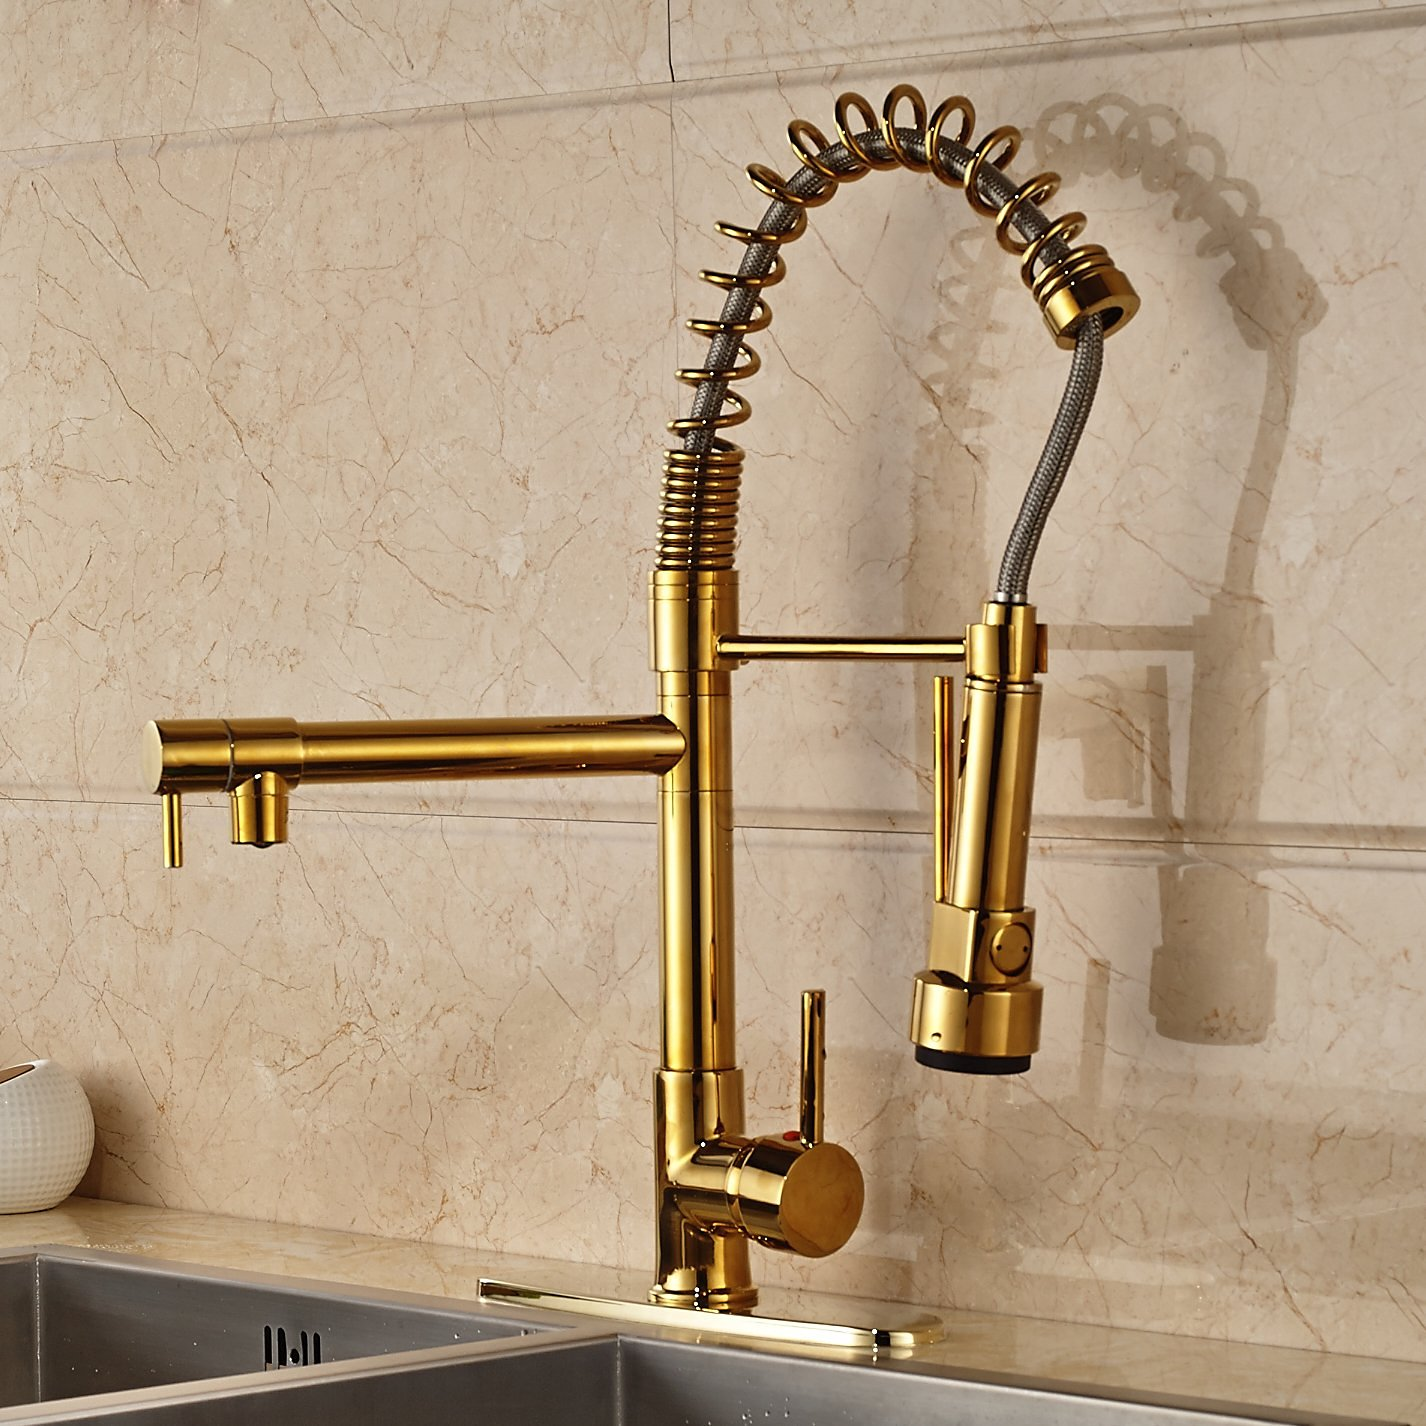 fsrks kitchen sink faucet Curitiba Deck Mounted Gold Finish Kitchen Sink Faucet with Pull Down Sprayer